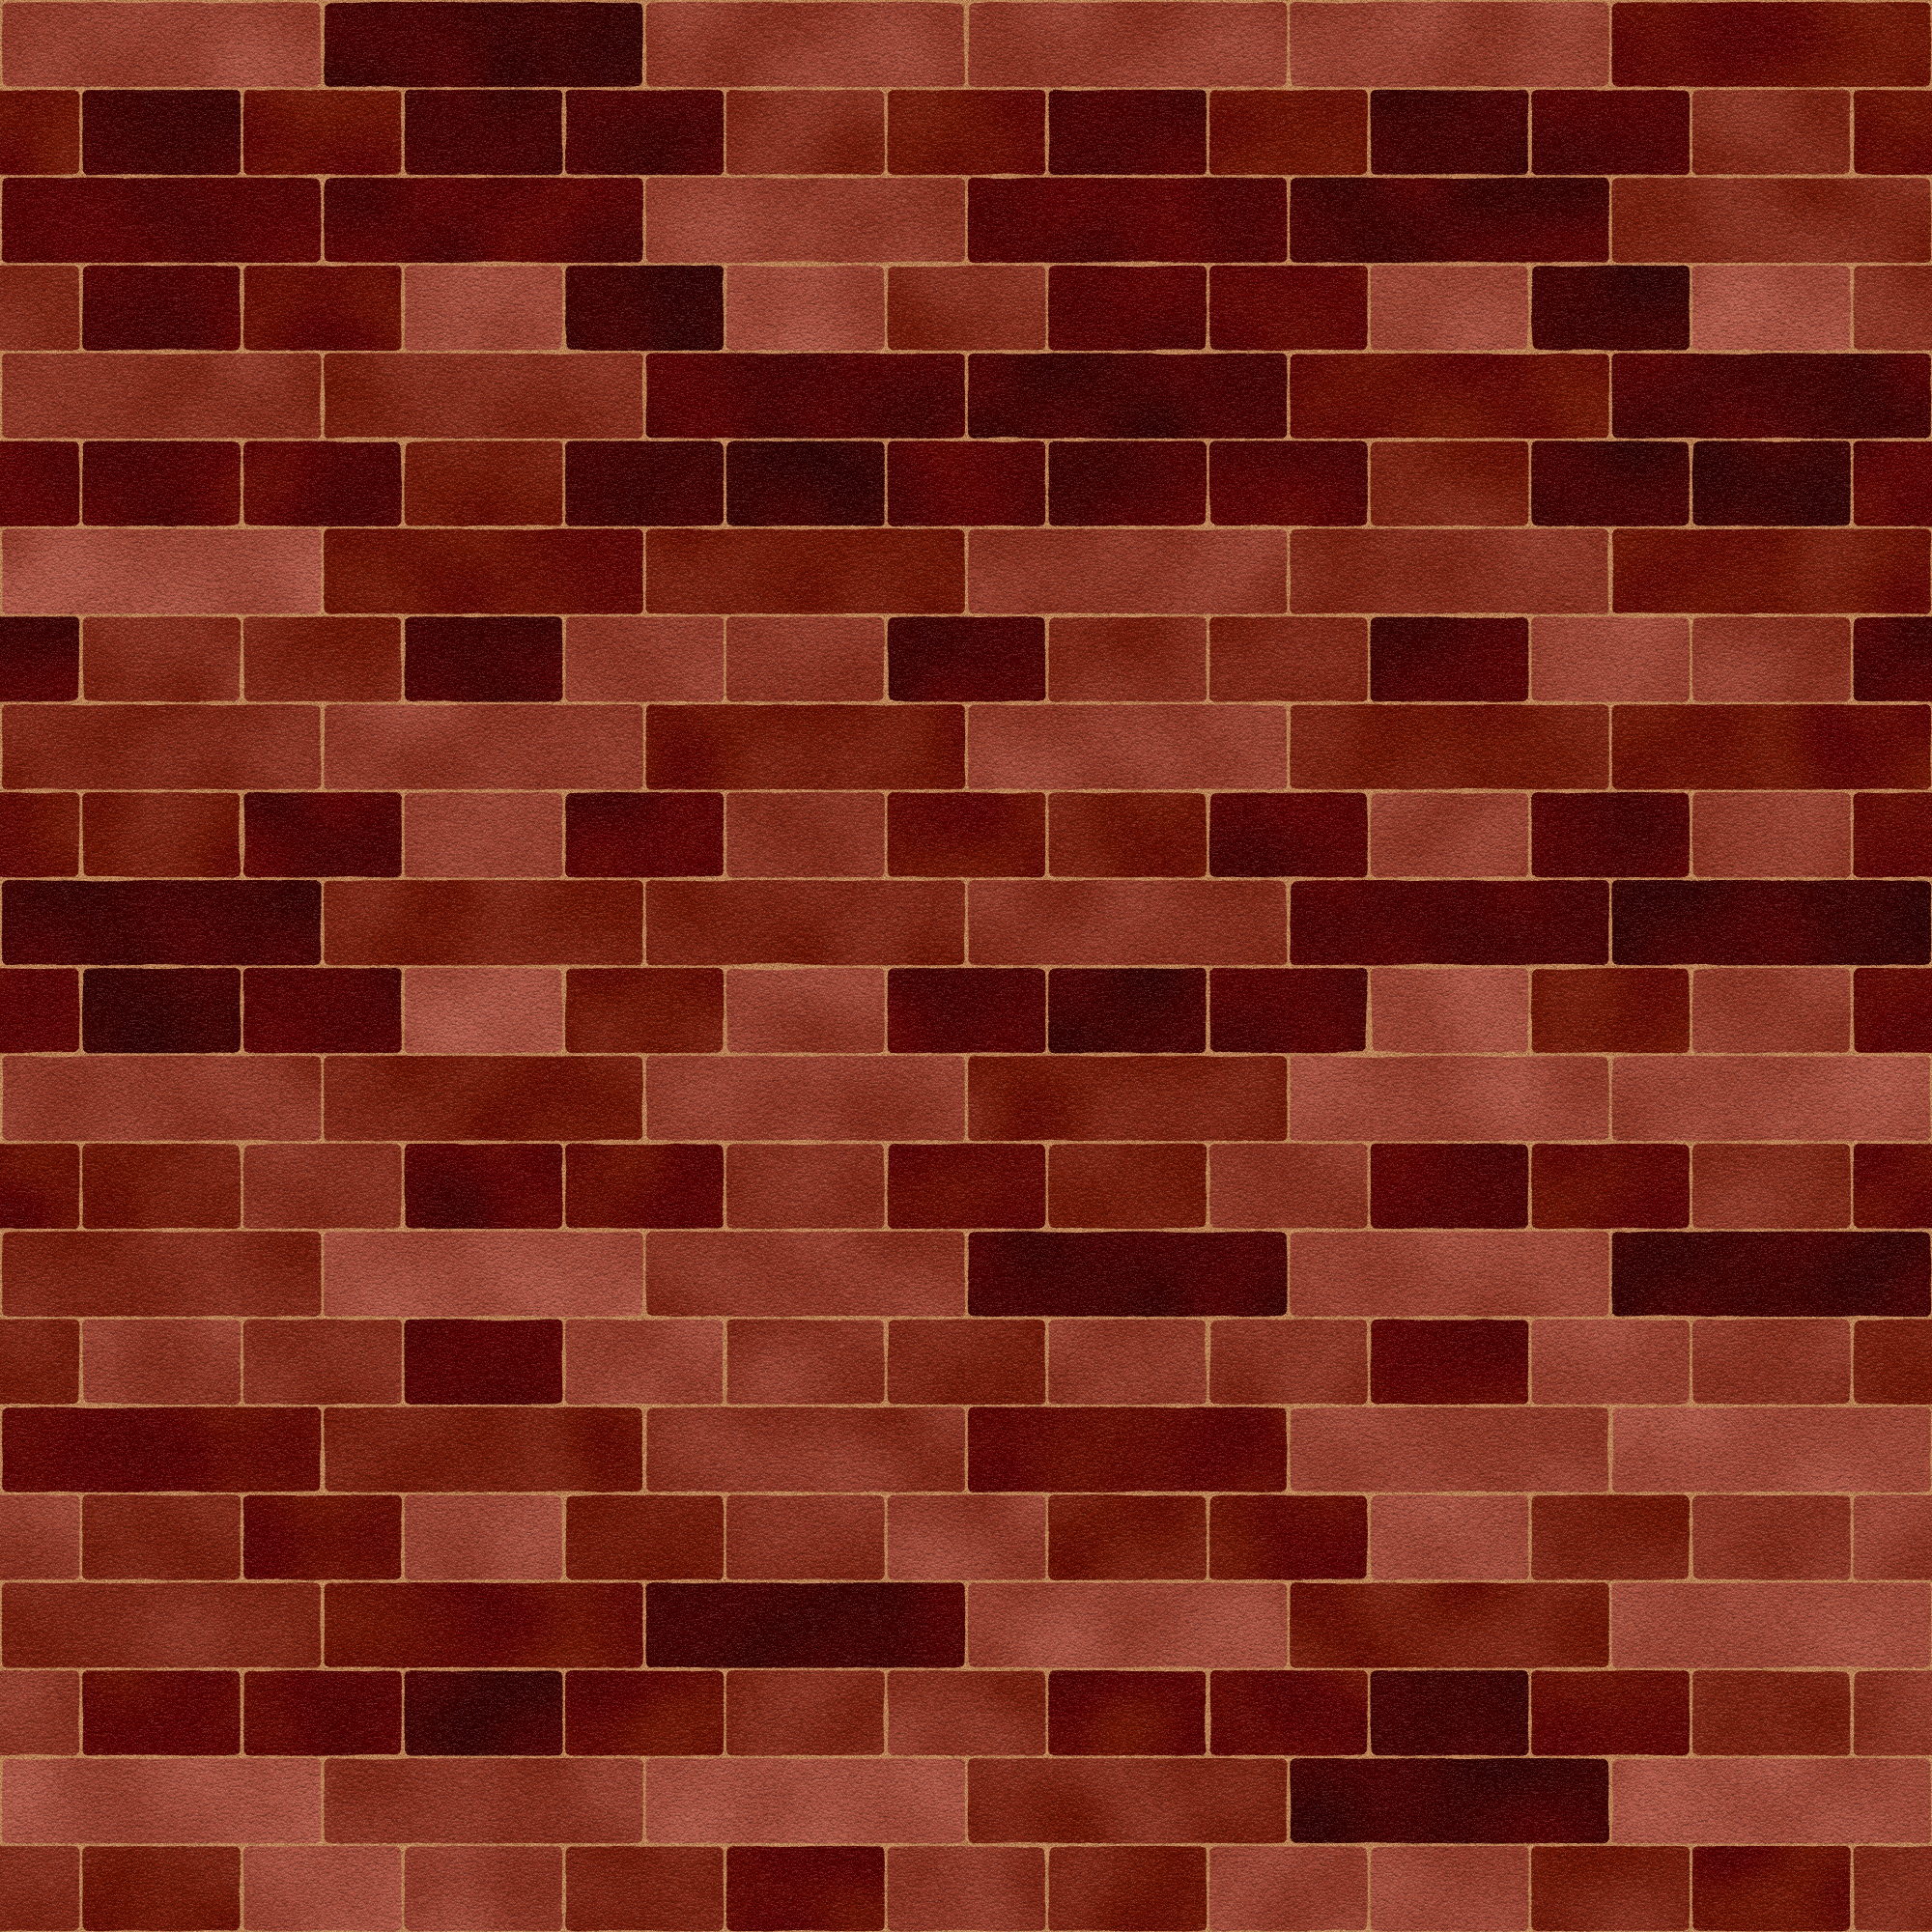 red brick wall texture, red brick wall, download photo, background, texture,